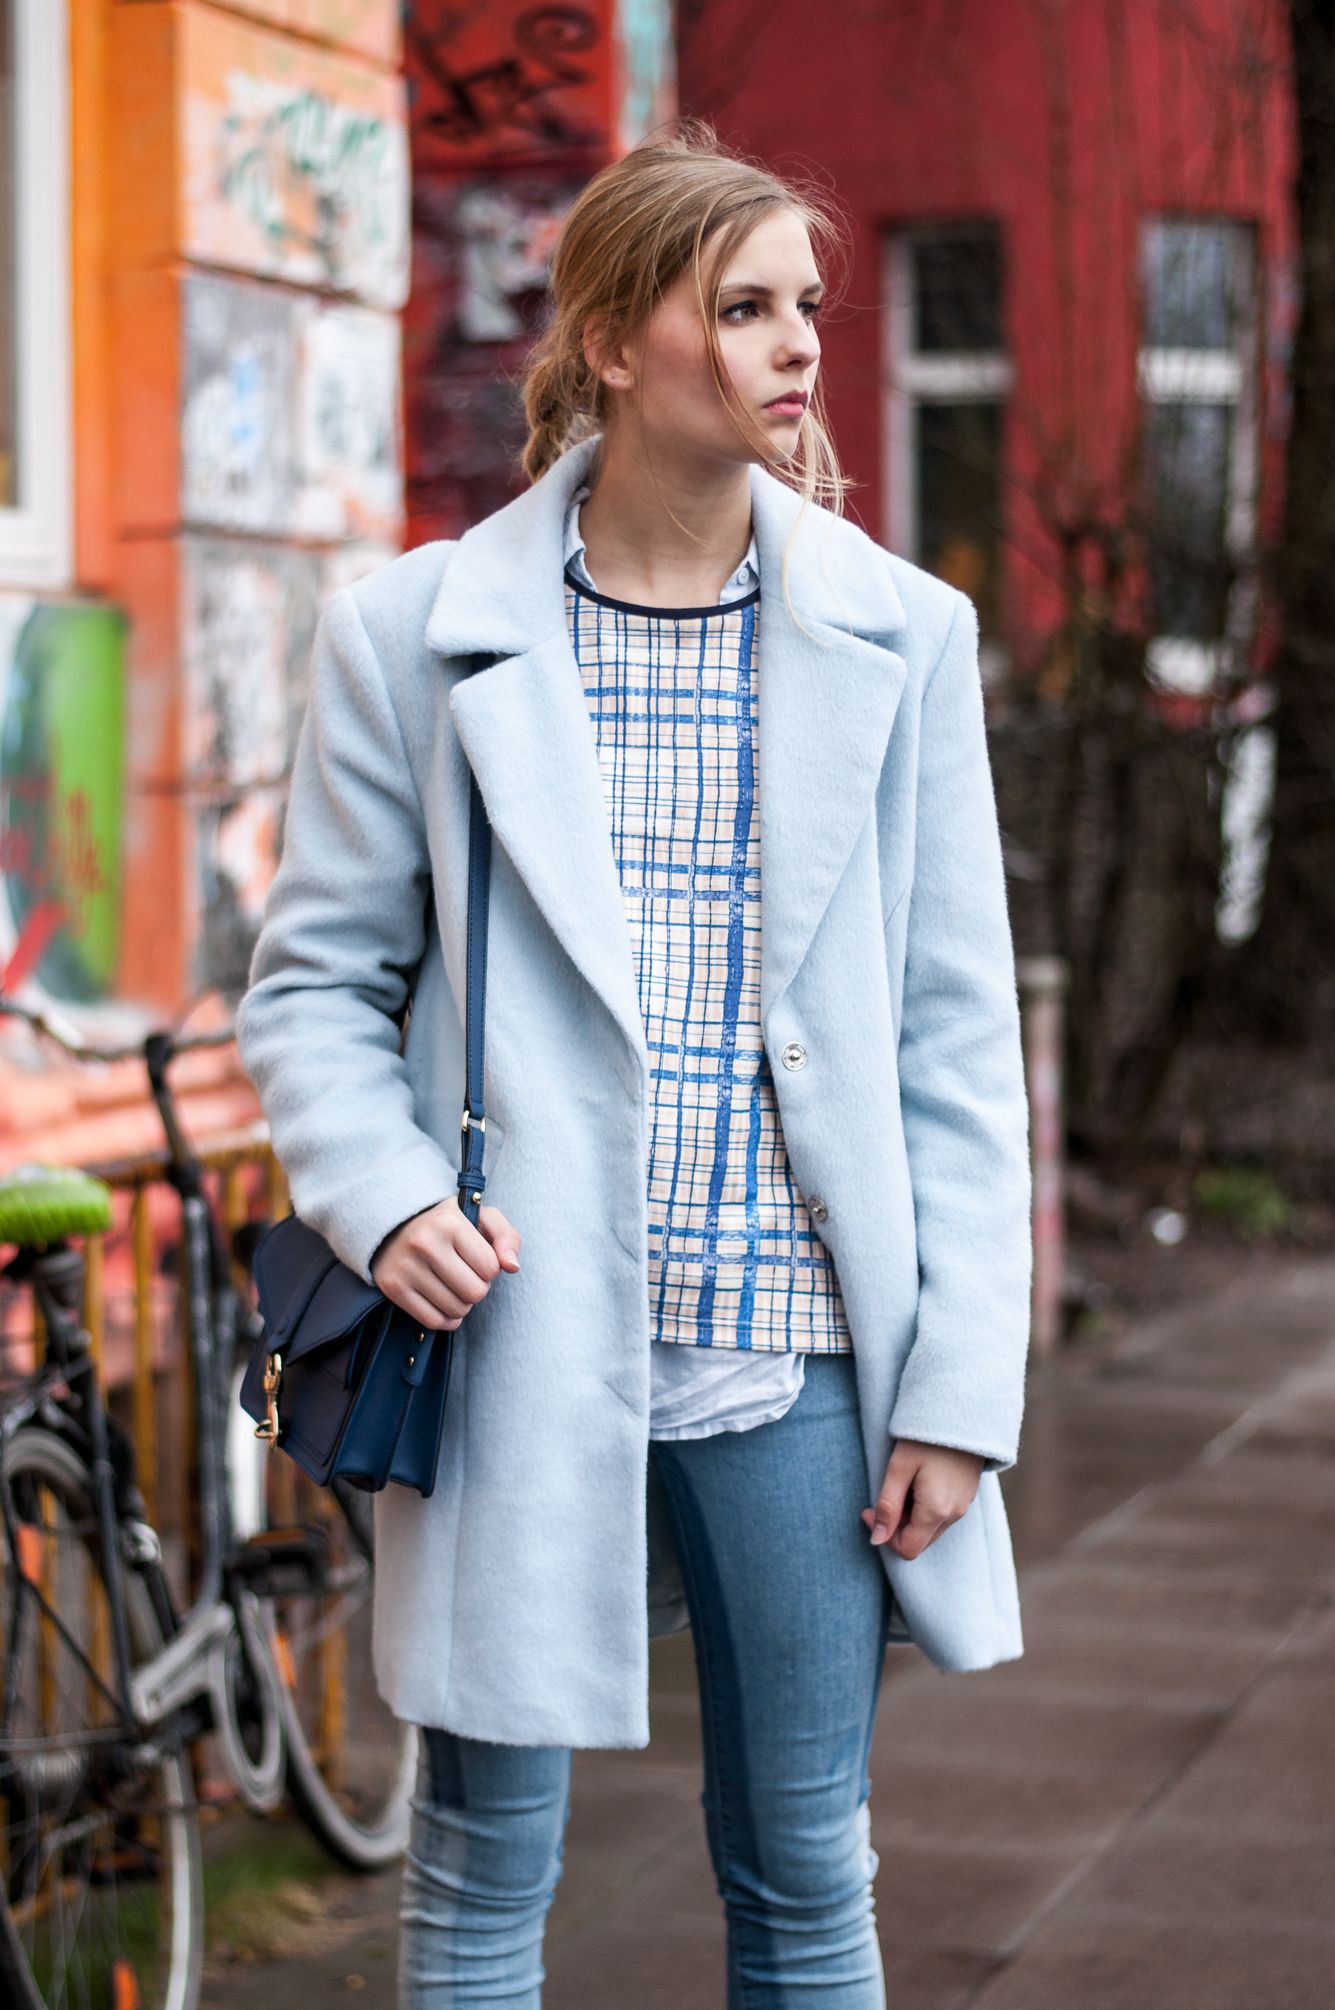 Blaues Outfit